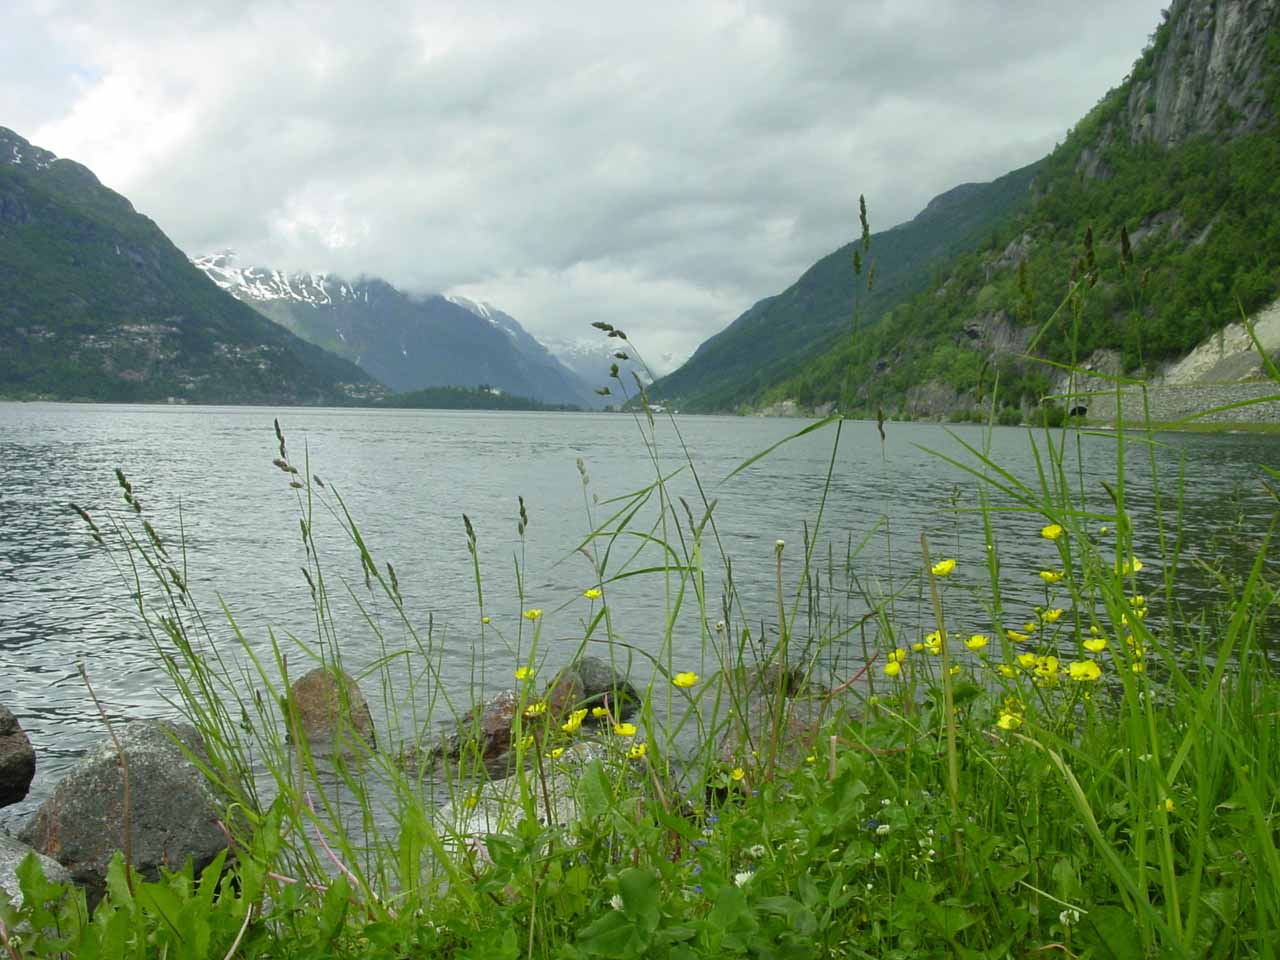 The lake of Sandvinvatnet was beautiful in its own right as shown by this photo with wildflowers in bloom along its shores